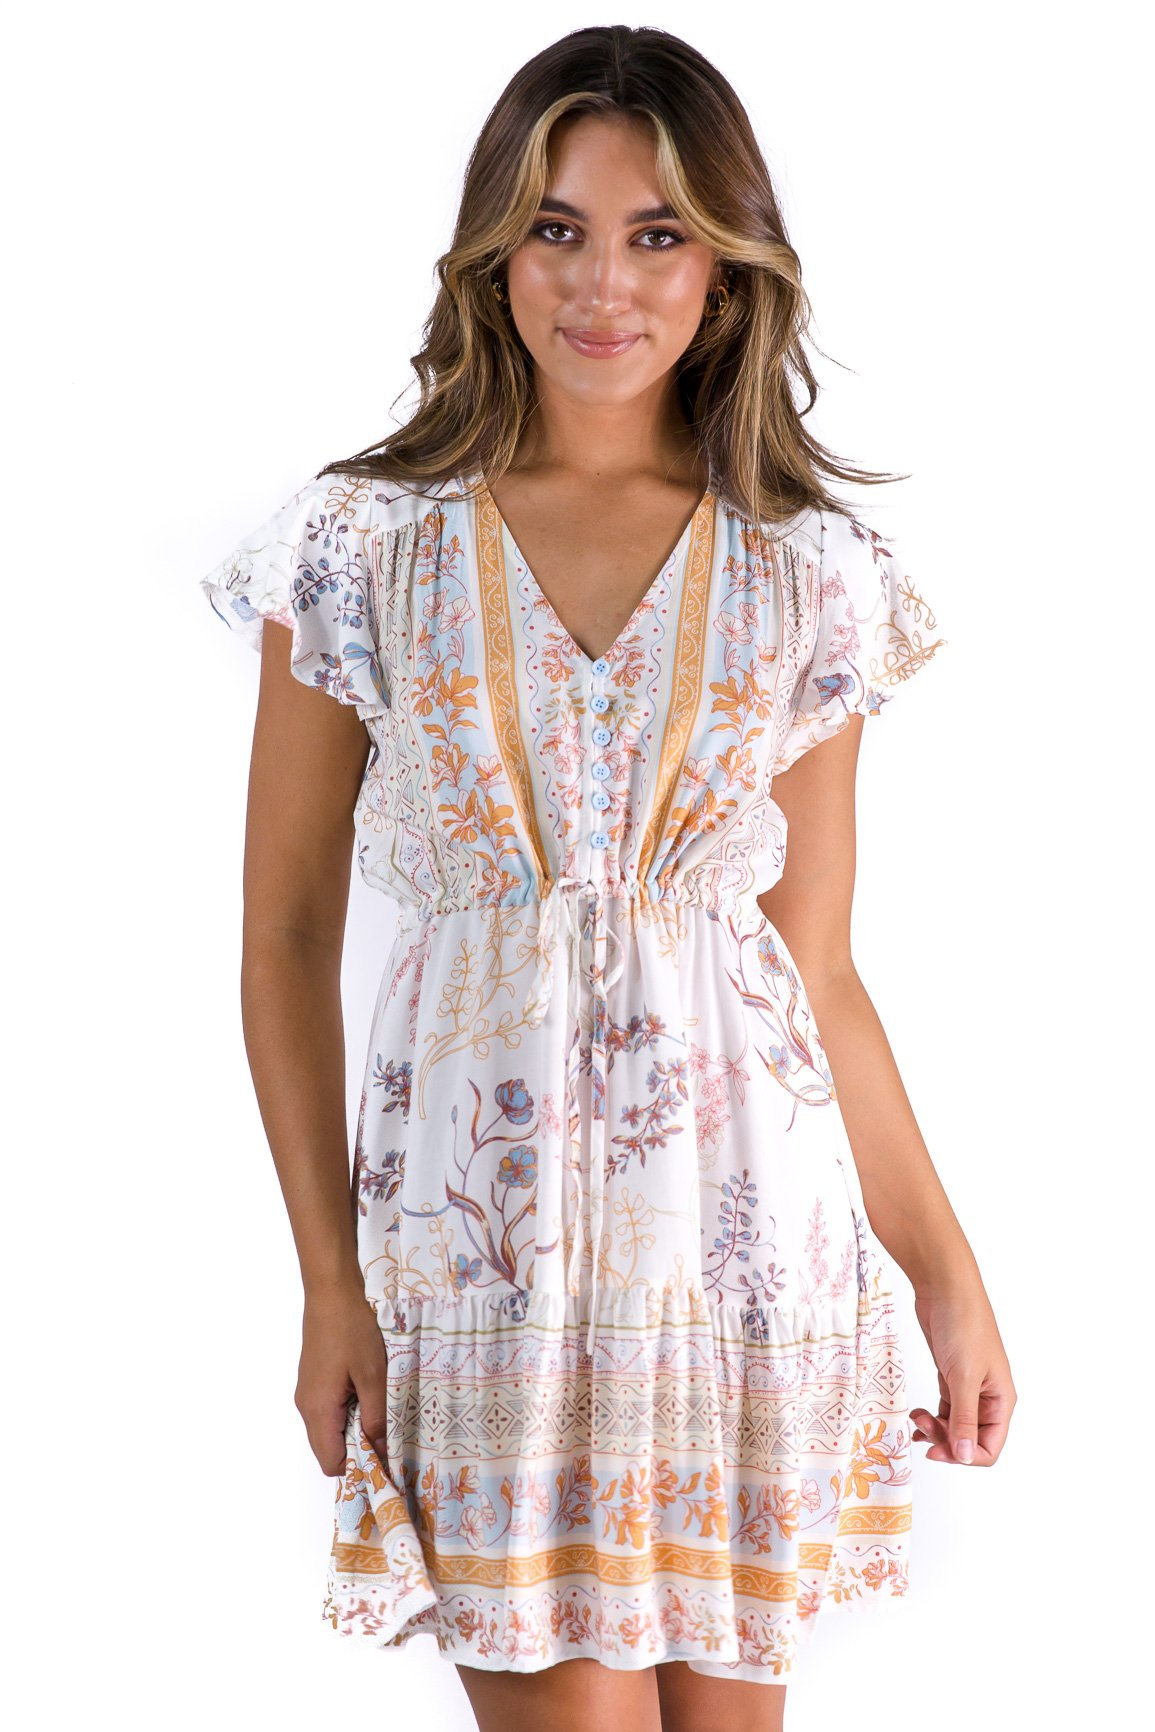 Lucinda Dress $59.00 @ ark and arrow